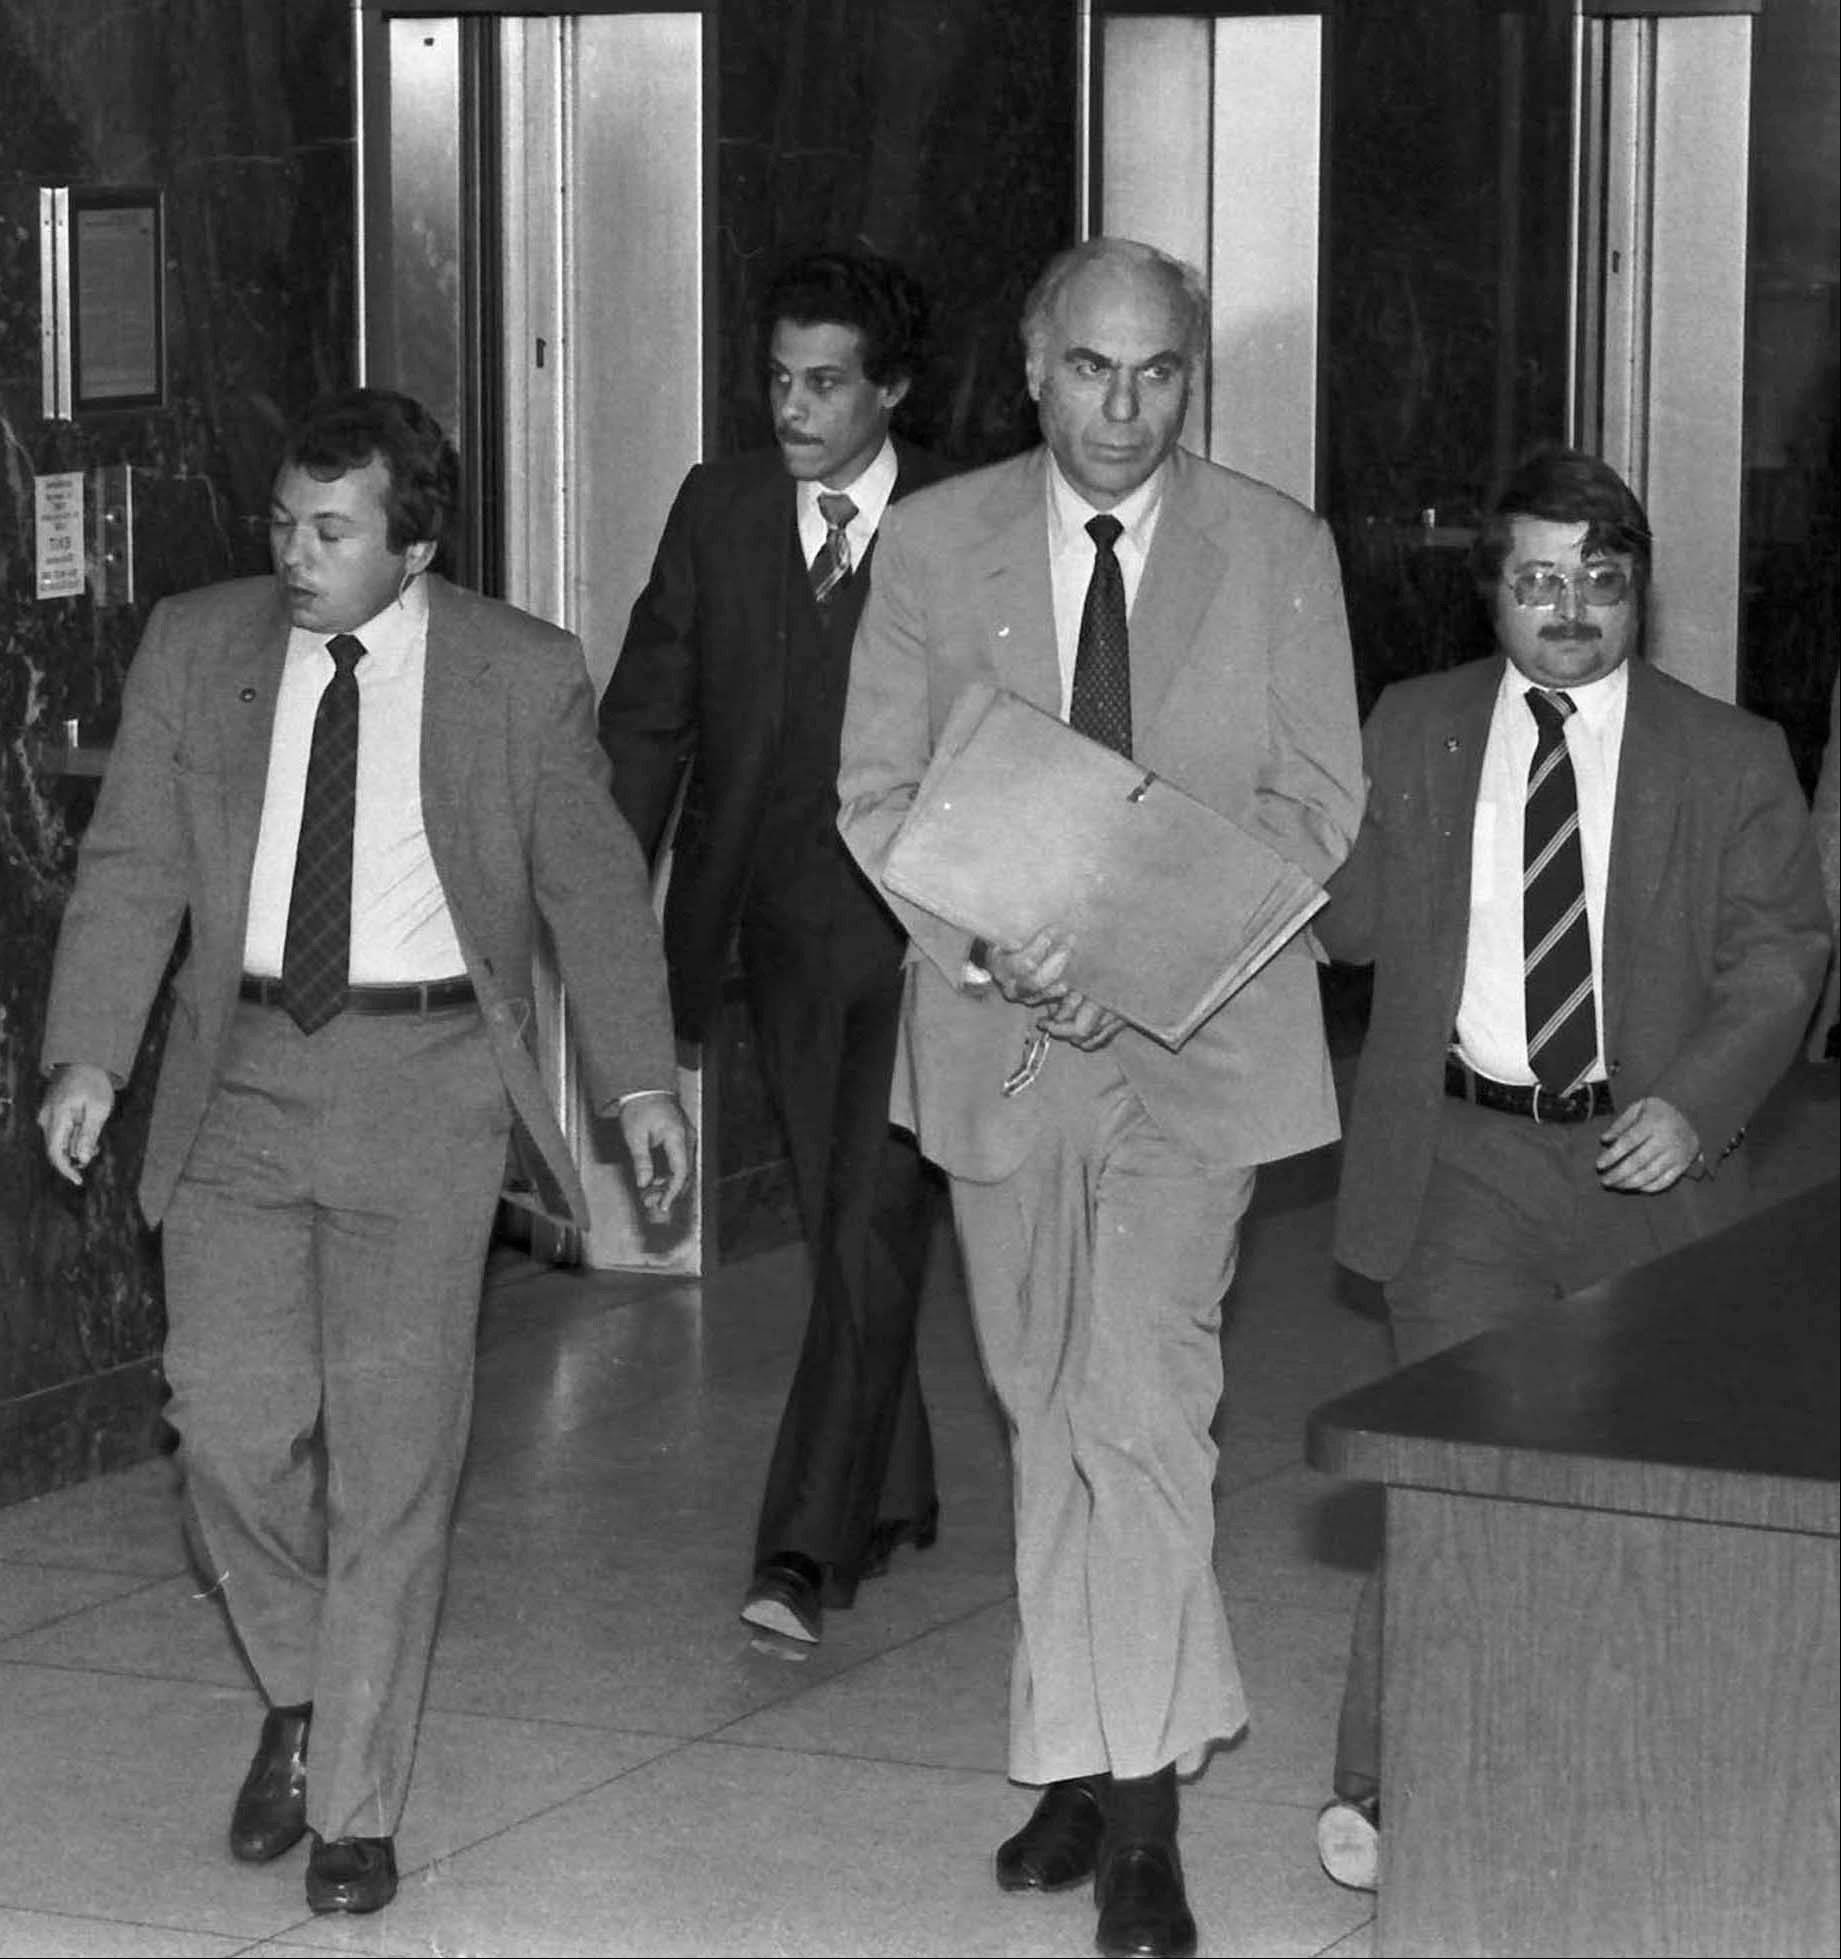 Ex-CIA agent Edwin Wilson, center, leaves federal court after a day of jury selection accompanied by U.S. Marshals in Houston. Wilson, a former CIA operative who was branded a traitor and convicted of shipping arms to Libya but whose conviction was later overturned after he served 22 years in prison, has died. He was 84.